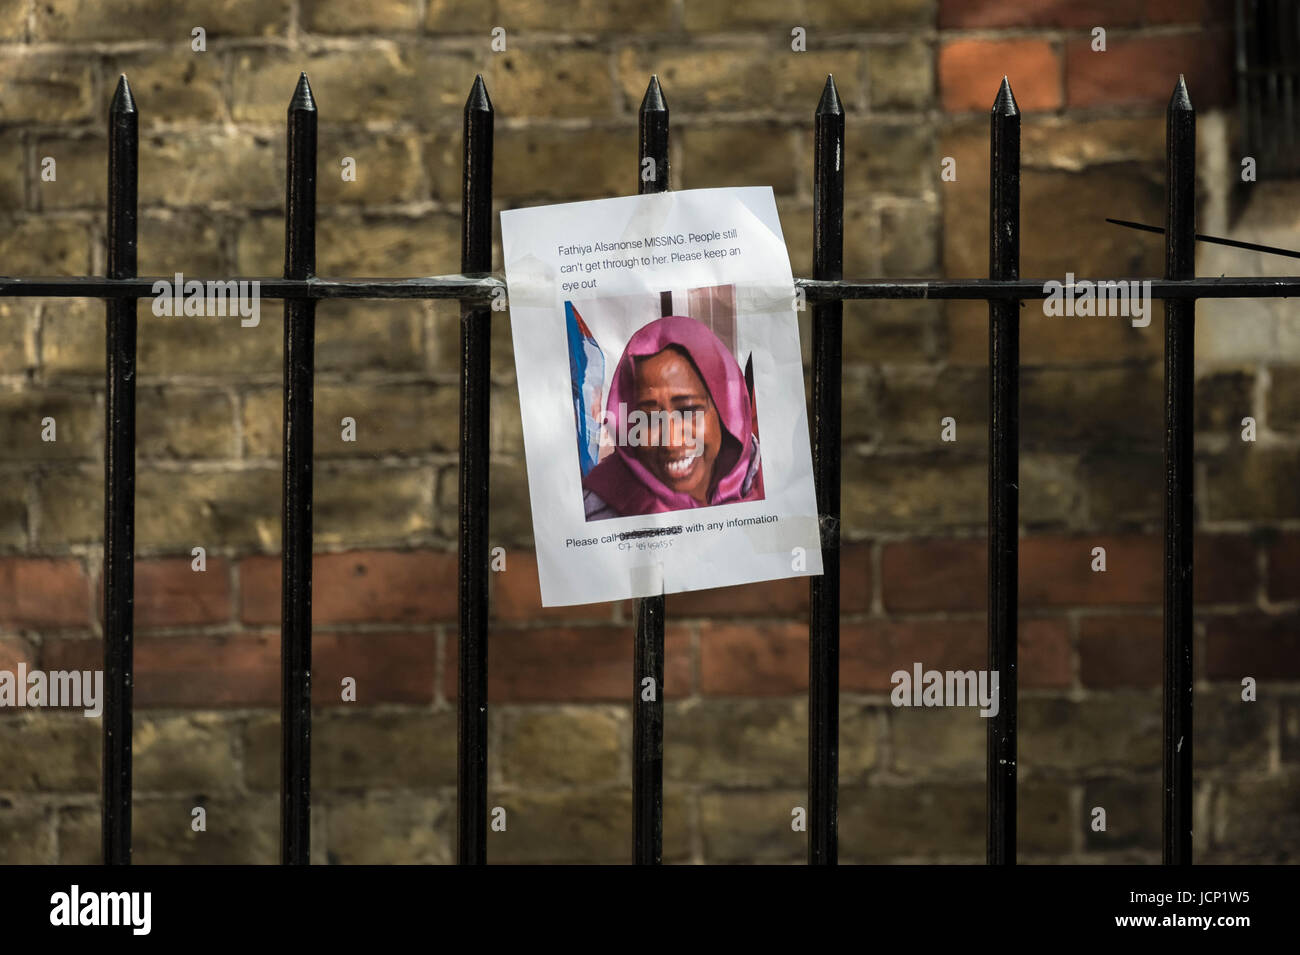 London, UK. 16th June, 2017. Posters for missing residents two days after the tragic fire at Grenfell Tower in west - Stock Image